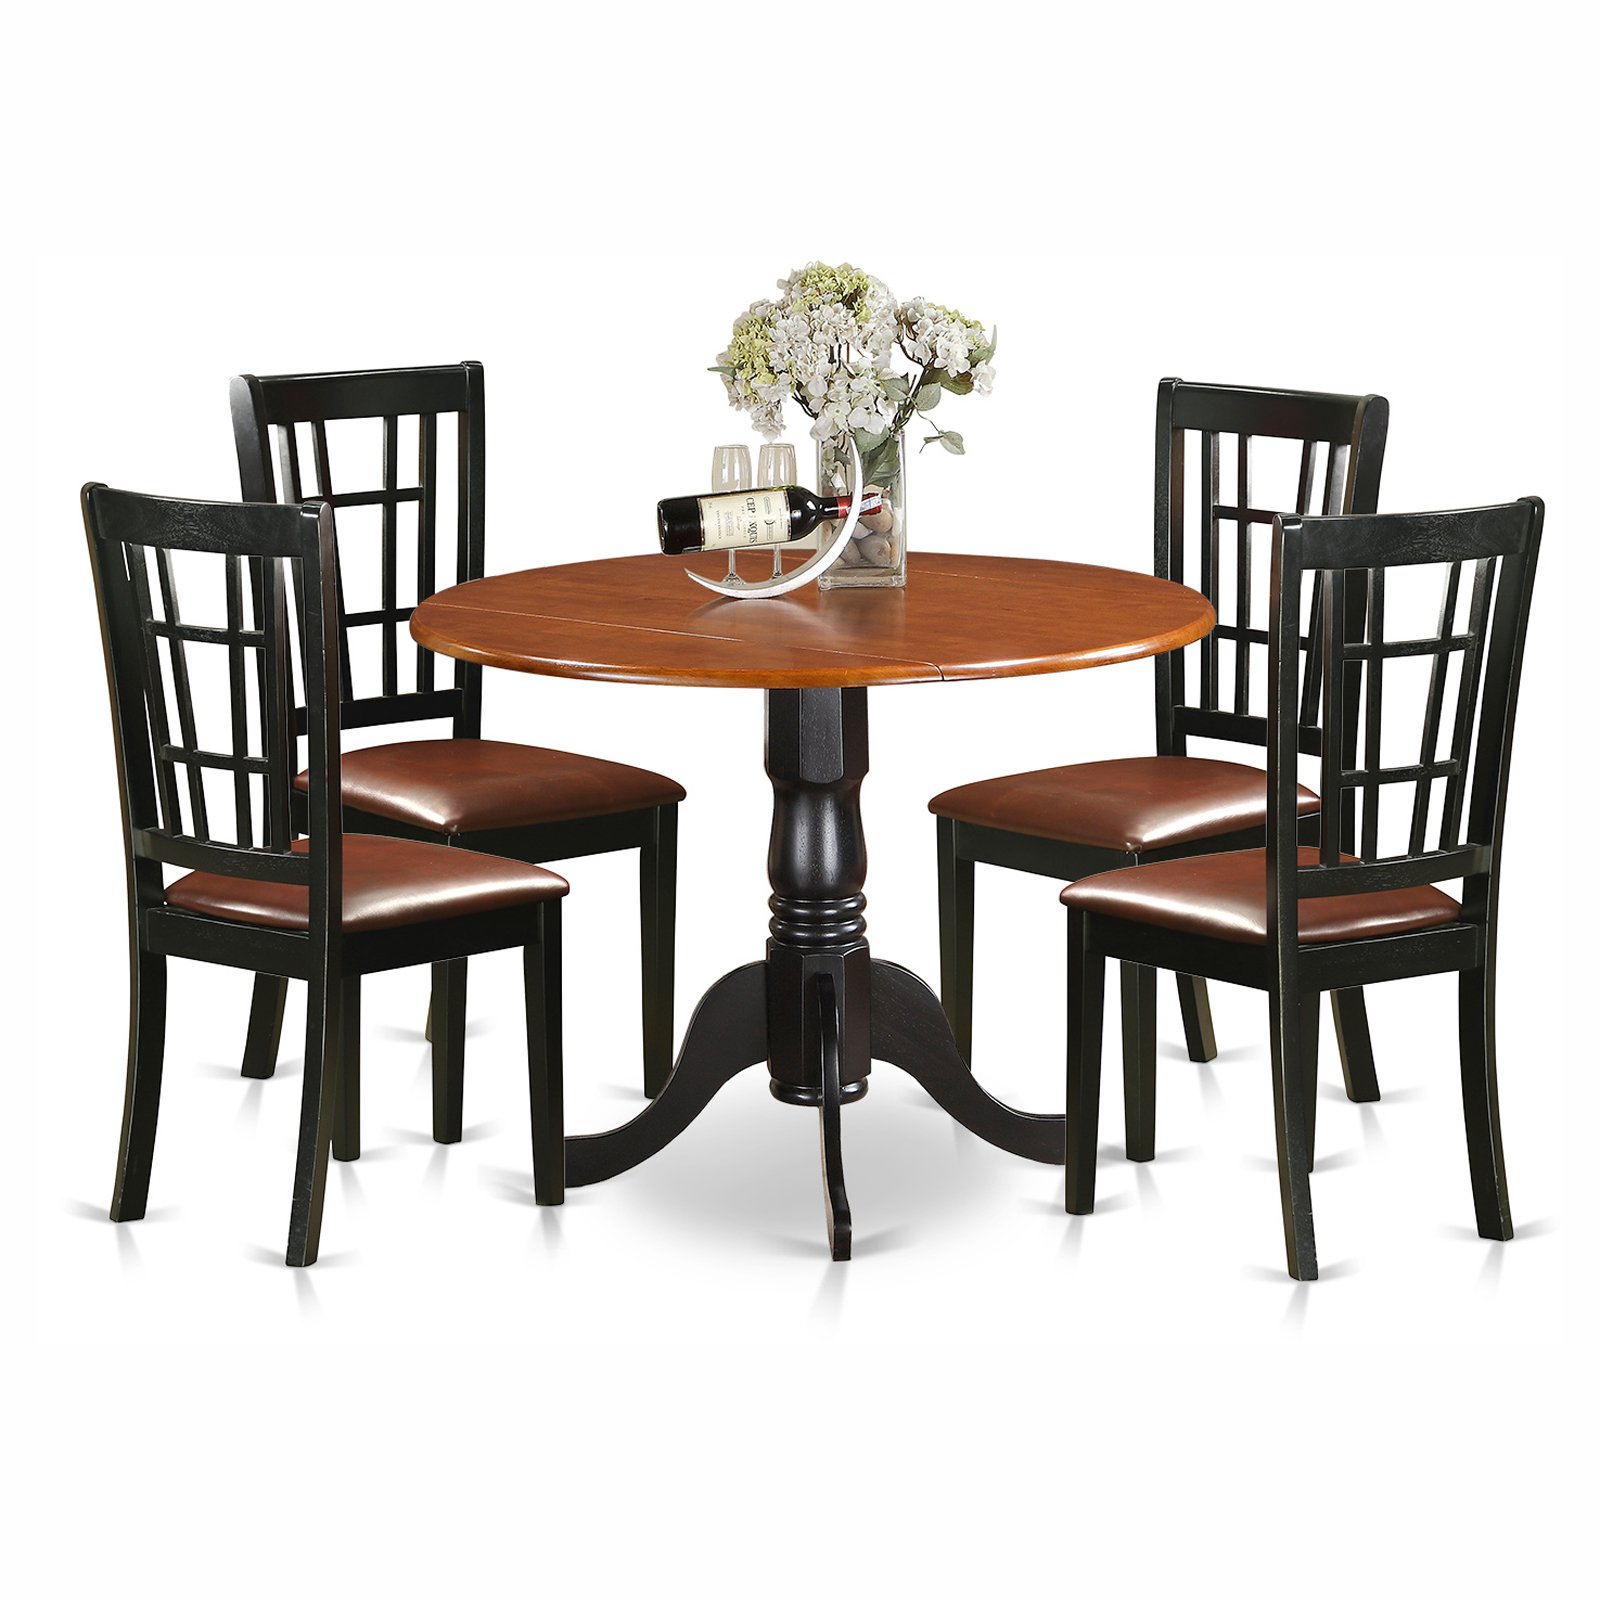 East West Furniture Dublin 5 Piece Drop Leaf Dining Table Set with Nicoli Faux Leather Seat Chairs